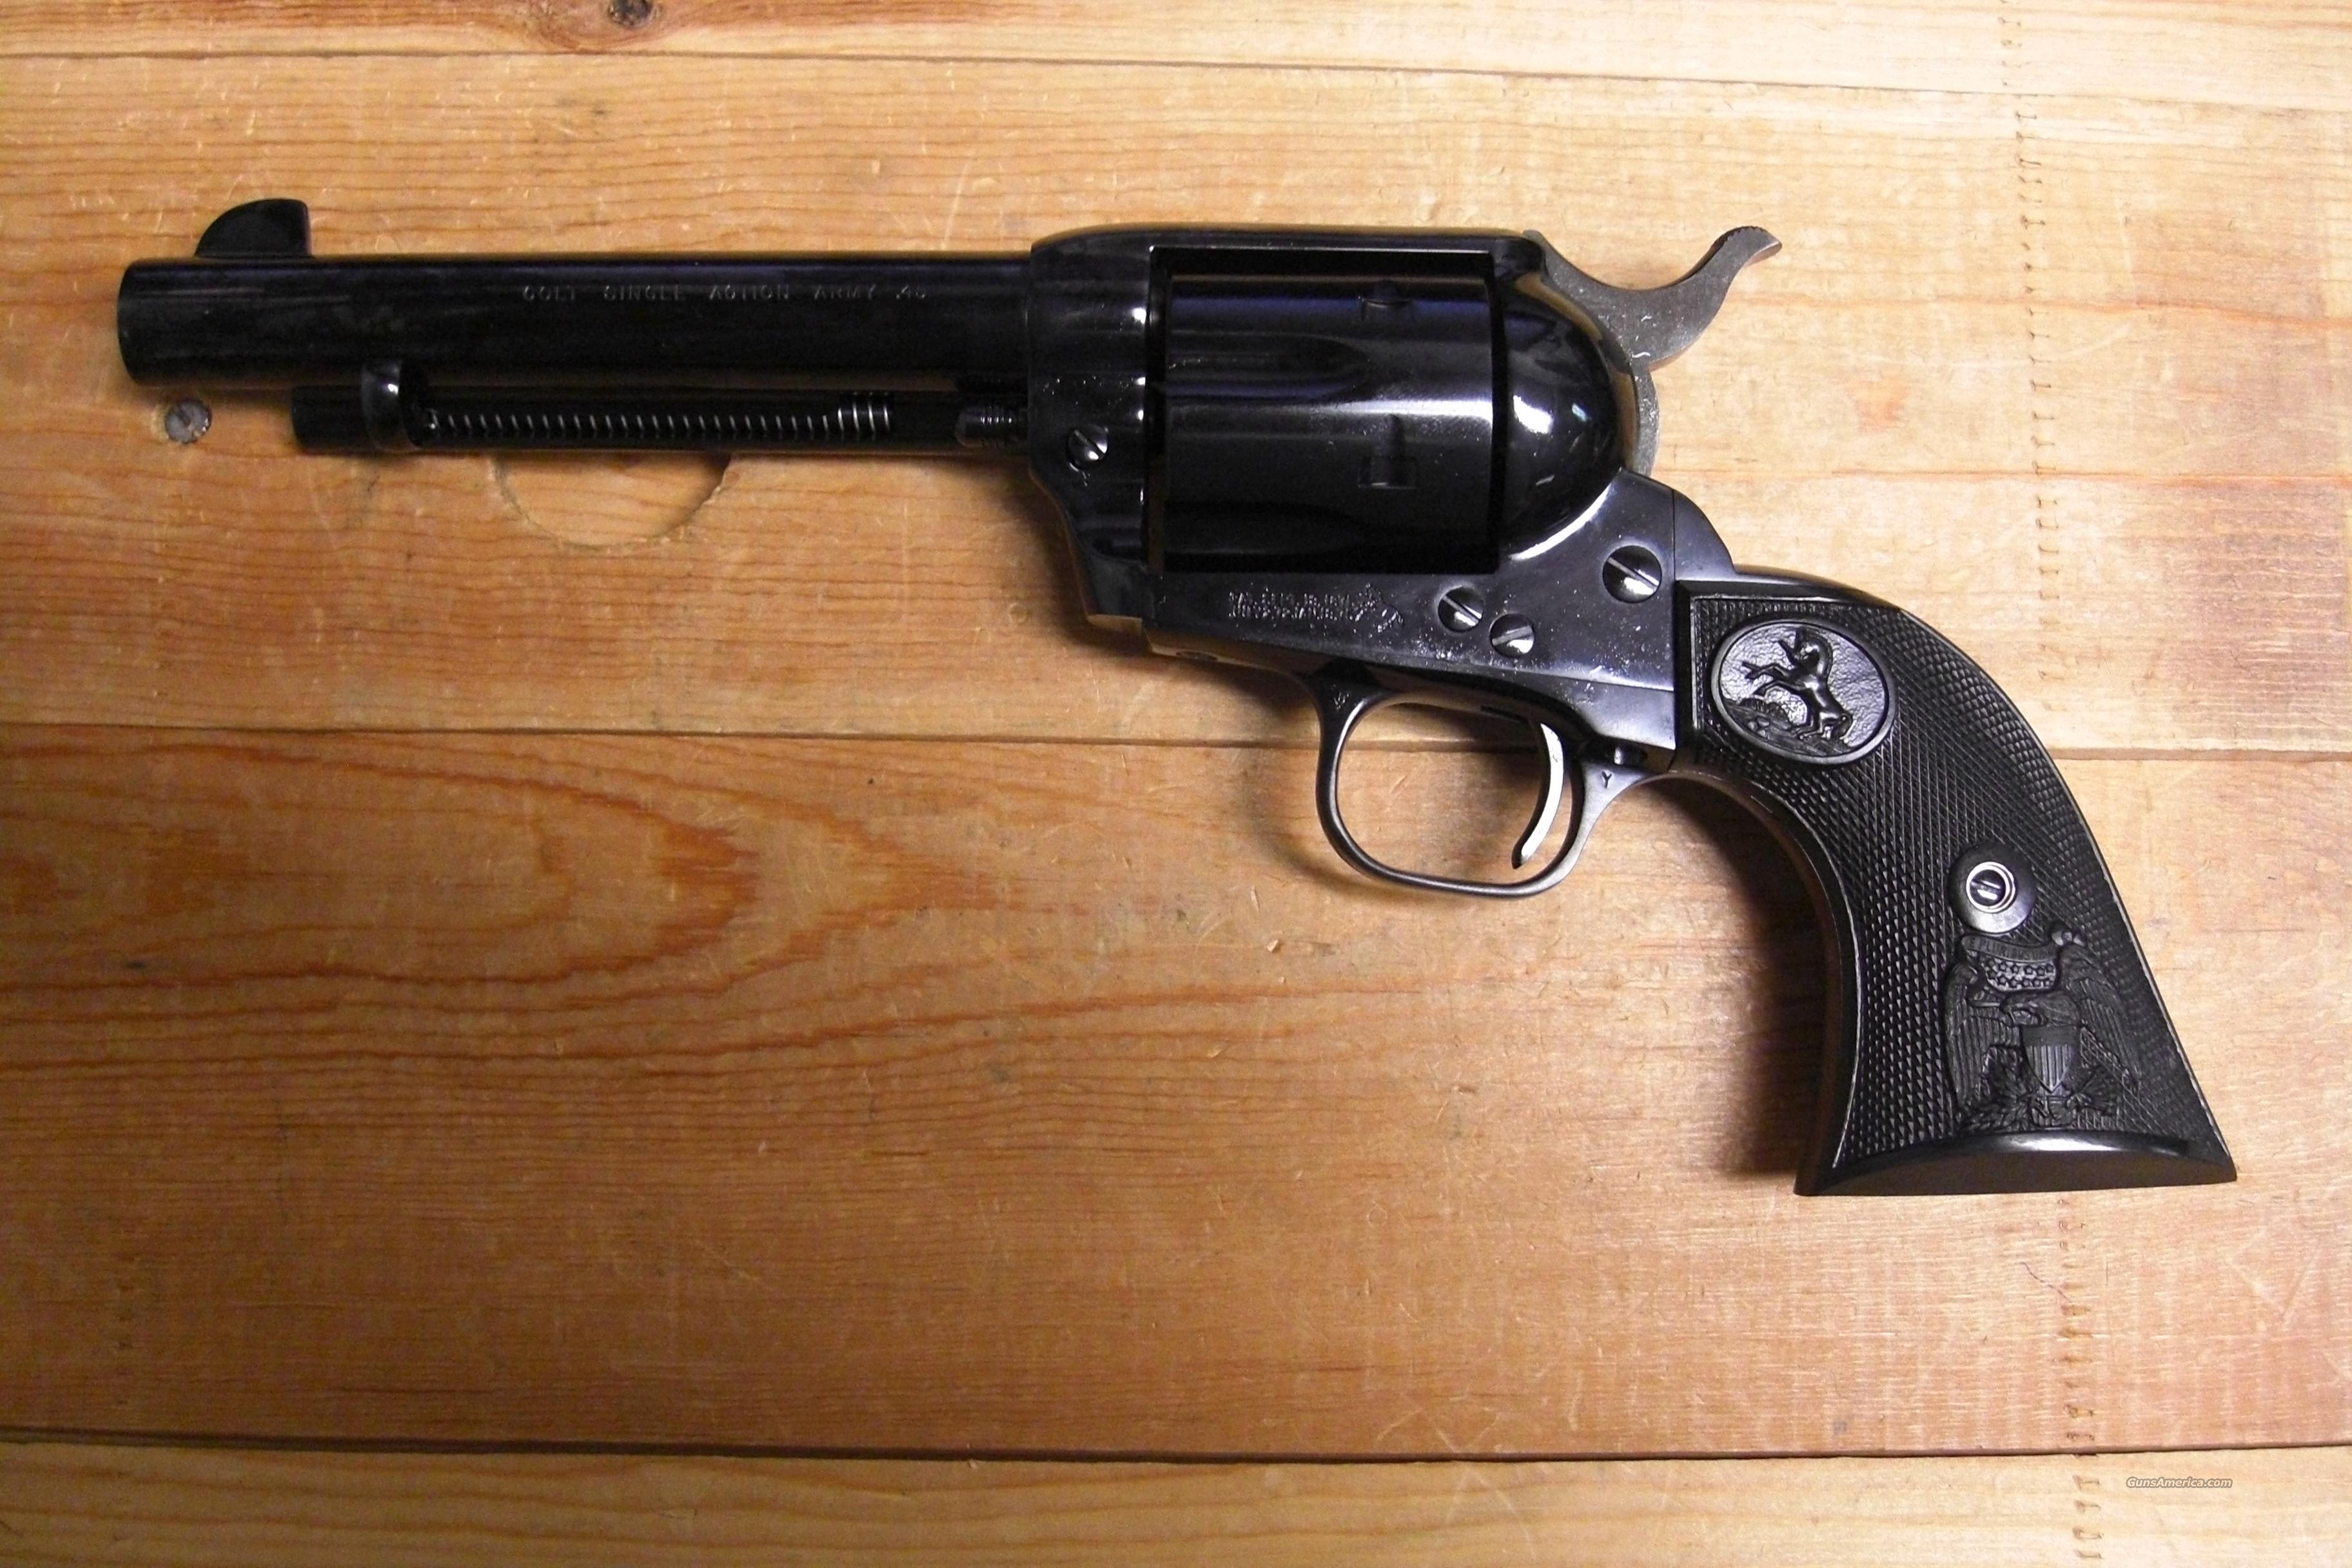 Single Action Army mod.#P1852  .45acp RARE  Guns > Pistols > Colt Single Action Revolvers - Modern (22 Cal.)